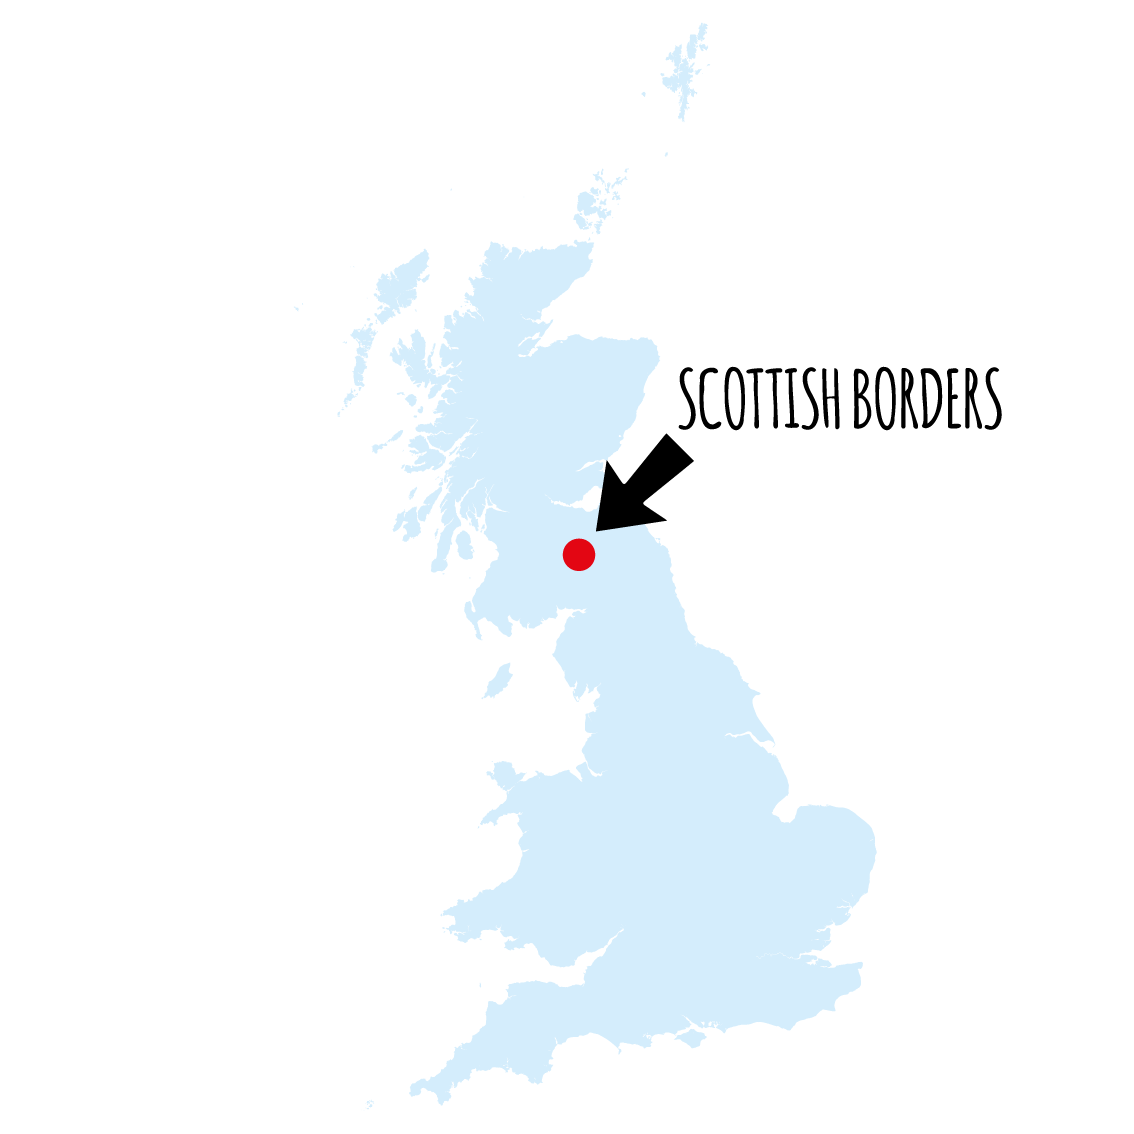 scottish-borders-map.png